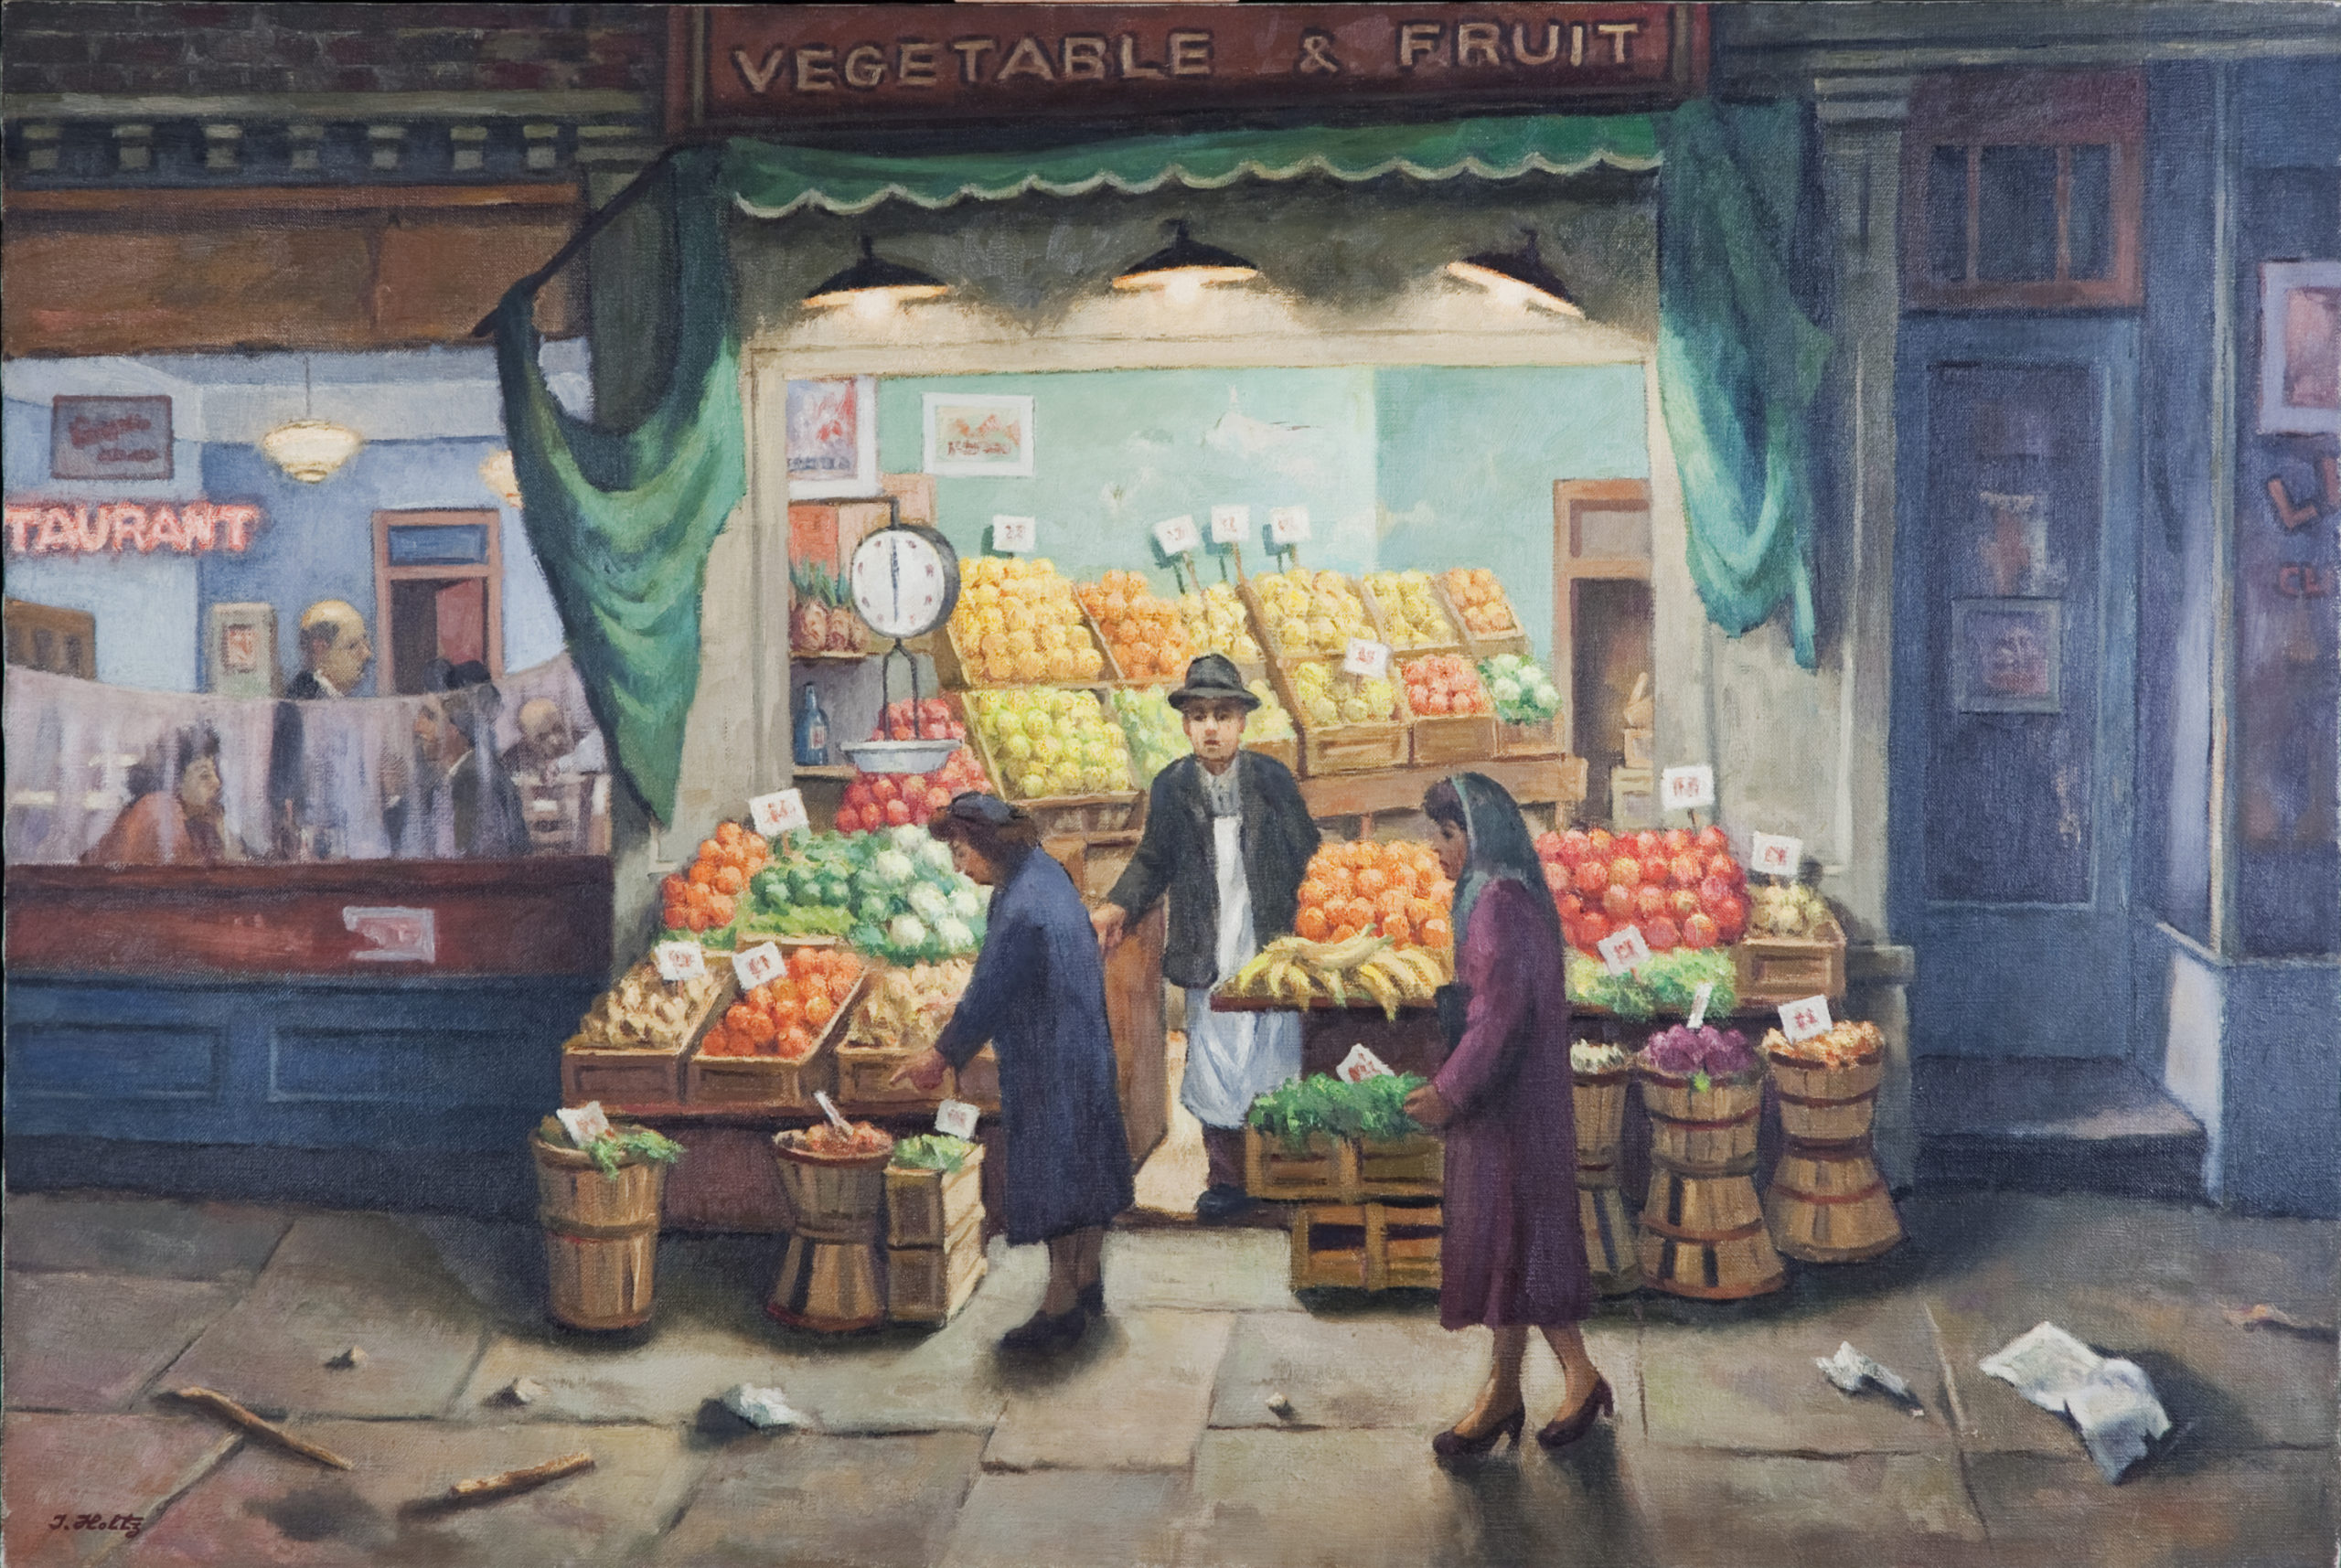 190 Vegetable and Fruit Store 1953 - Oil on Canvas - 36 x 24 - No Frame